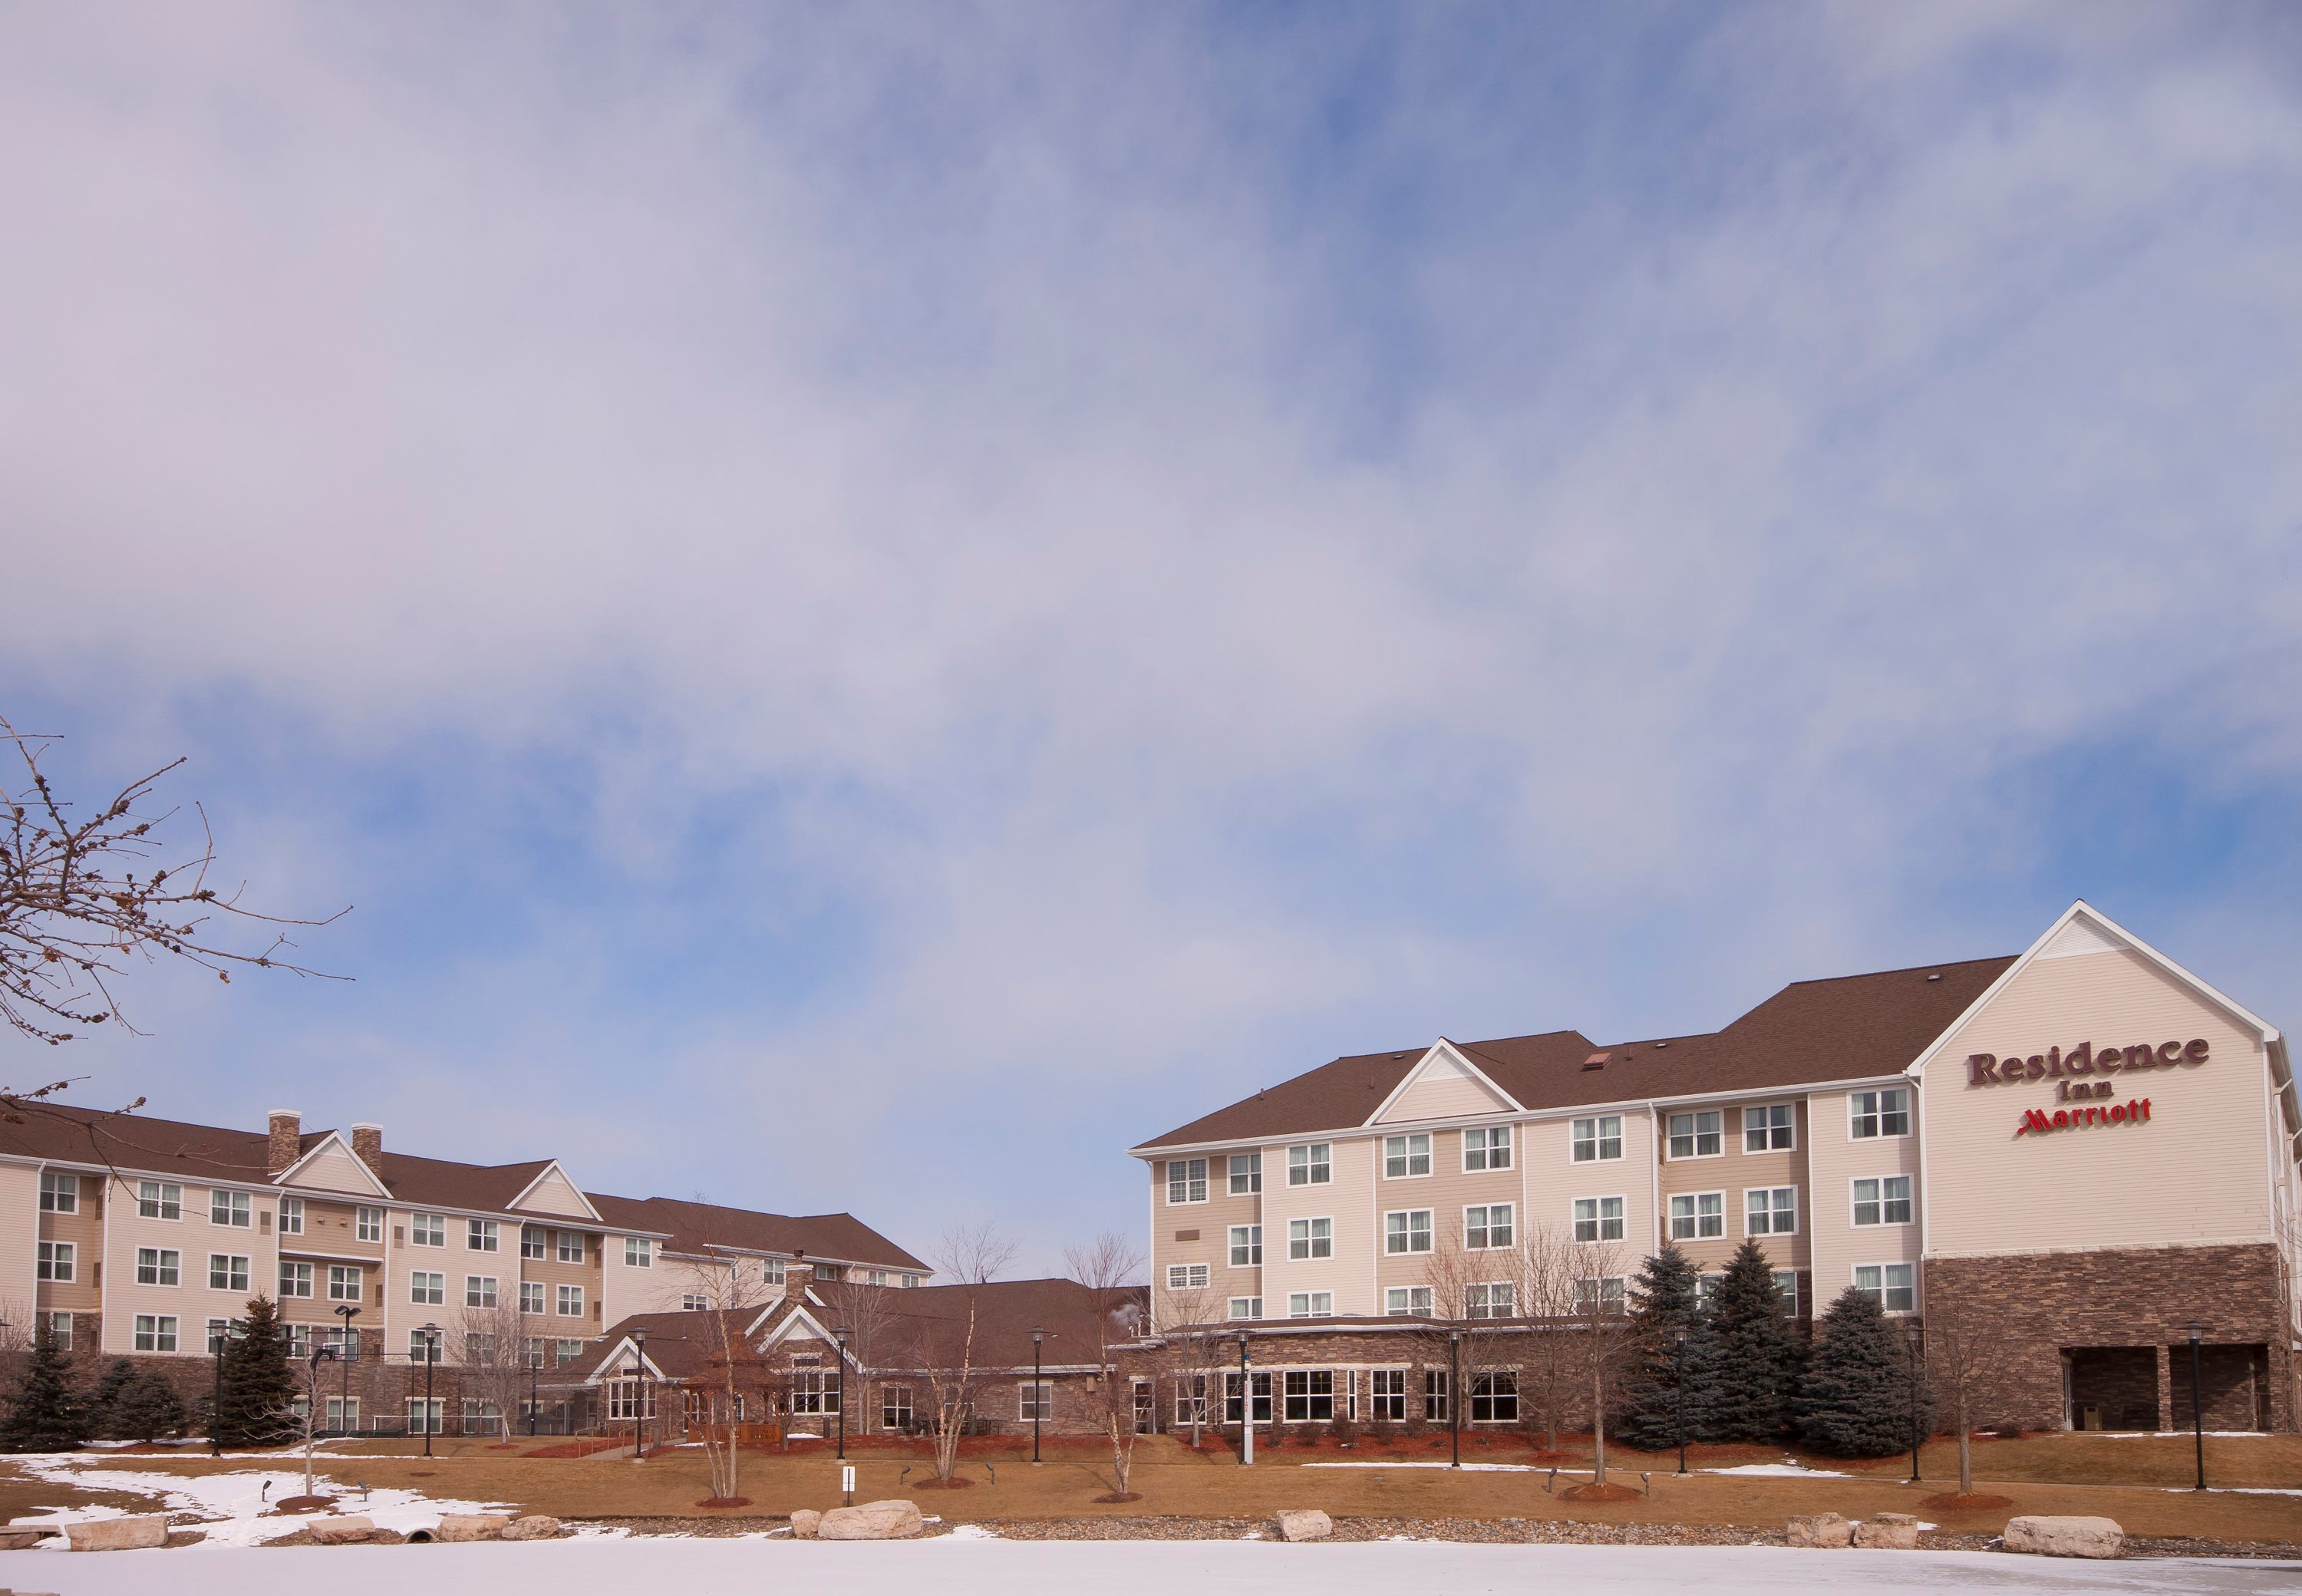 Residence Inn by Marriott Des Moines West at Jordan Creek Town Center image 1